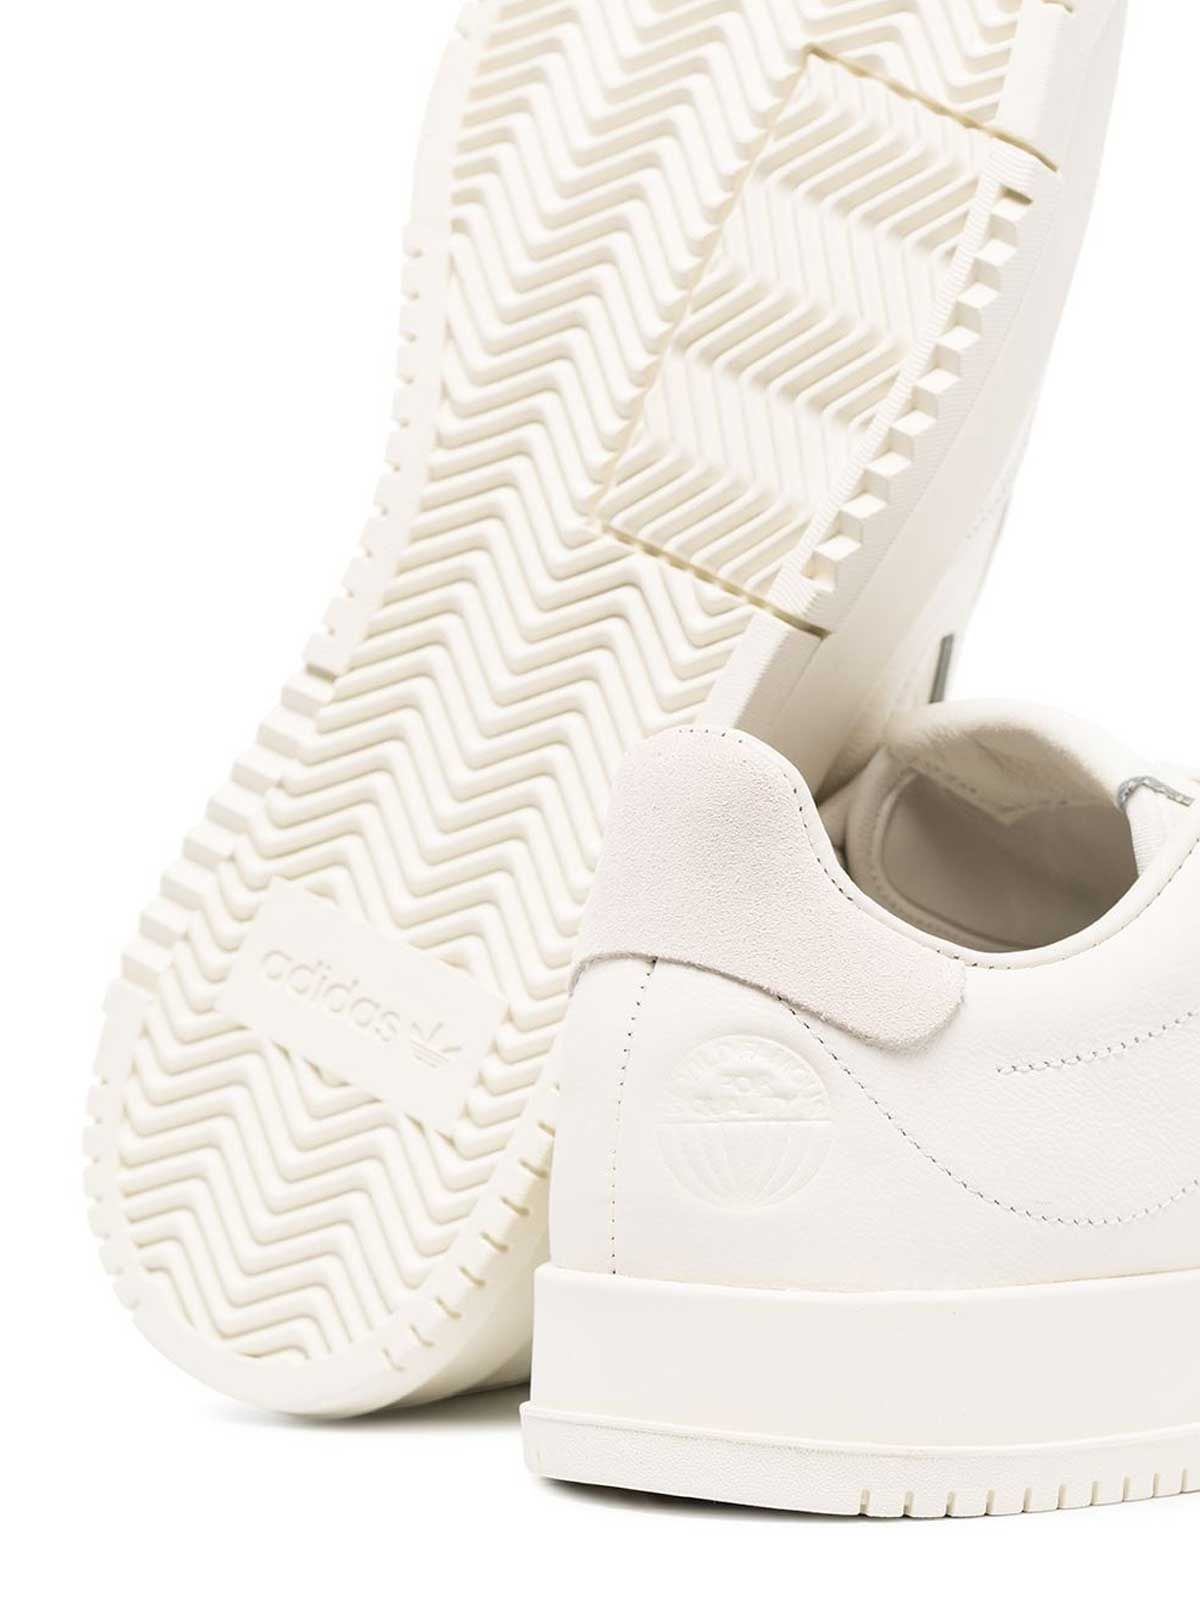 ADIDAS MEN'S EF5902 WHITE LEATHER SNEAKERS